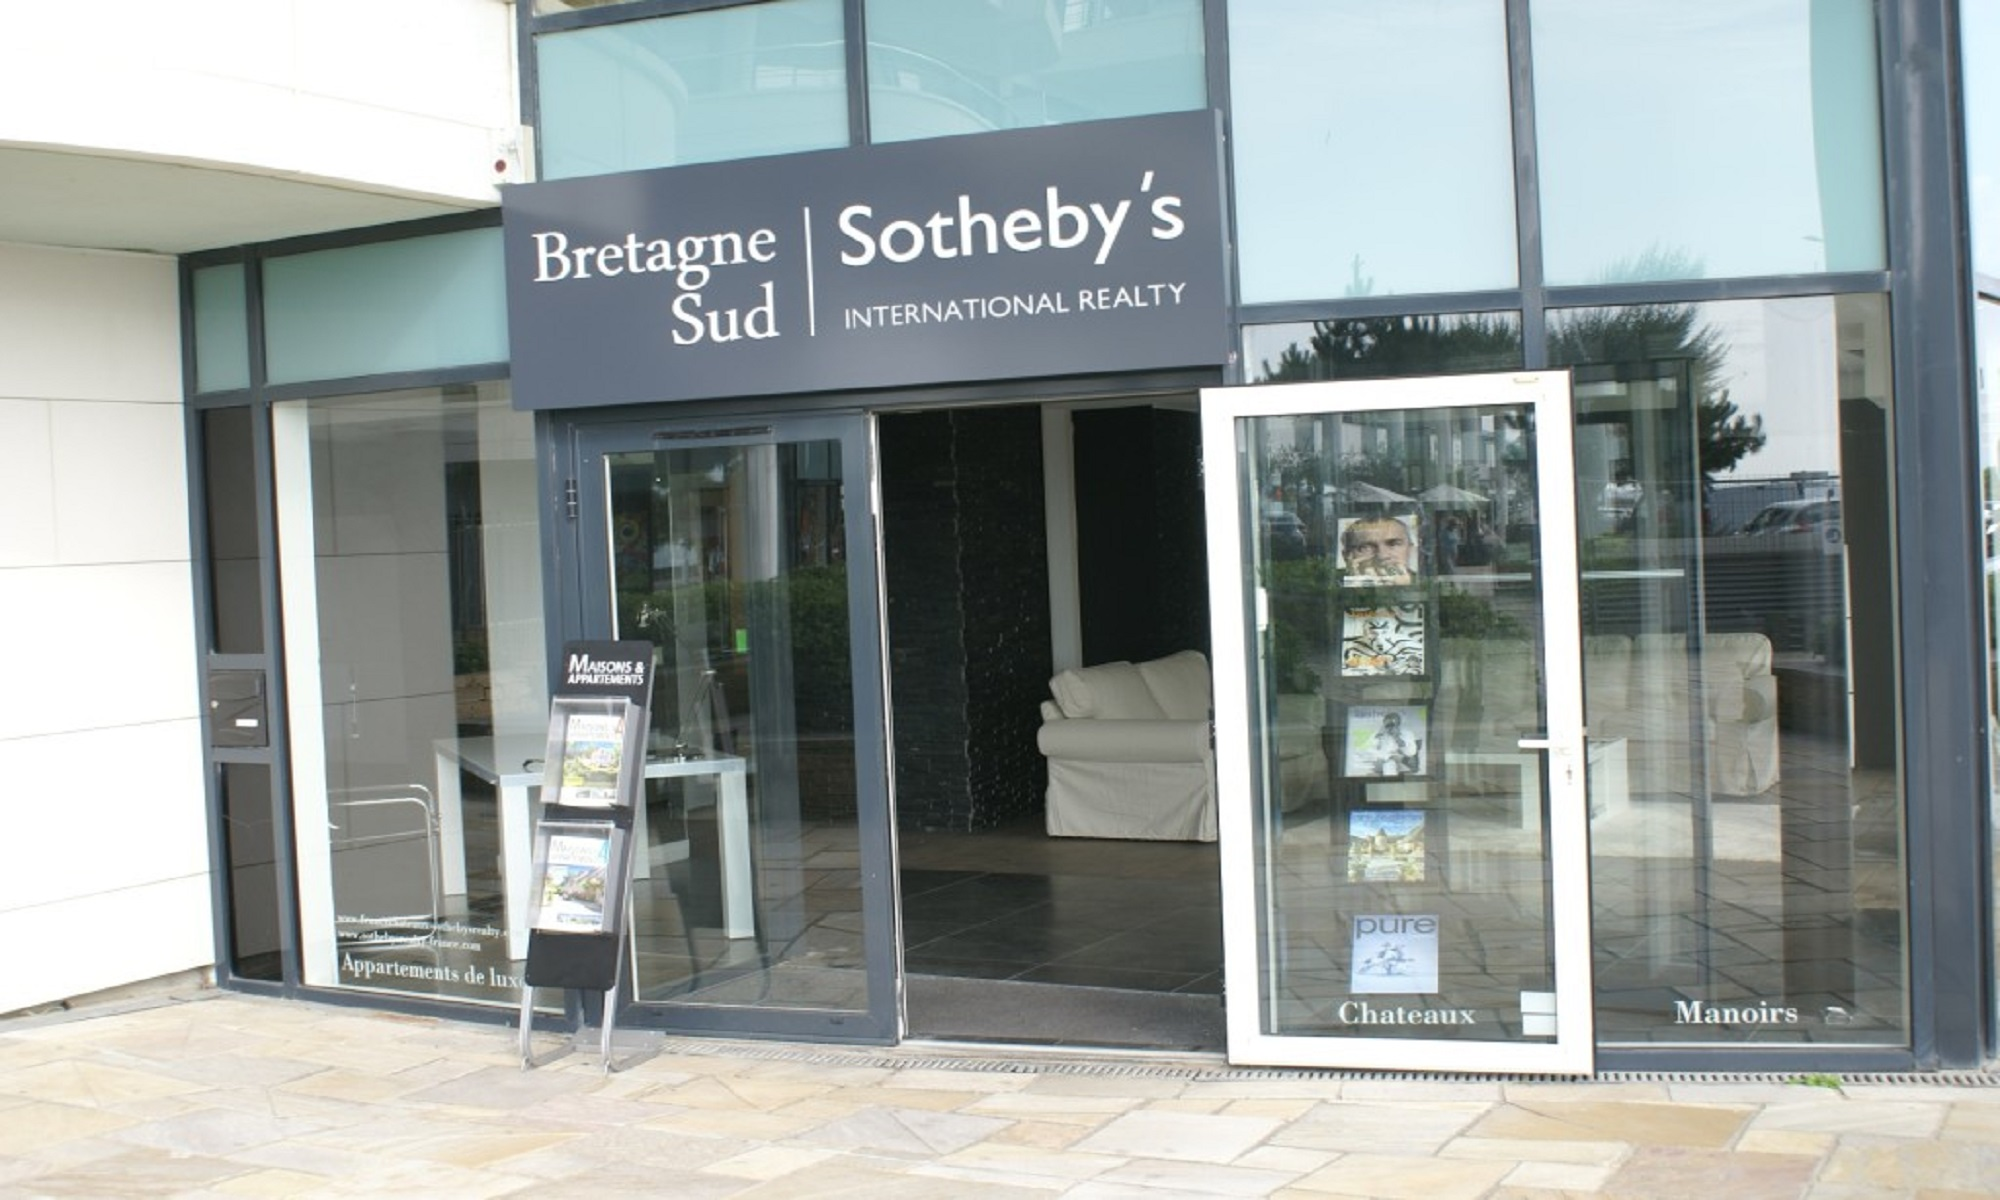 Office Bretagne Sud Sotheby's International Realty Photo